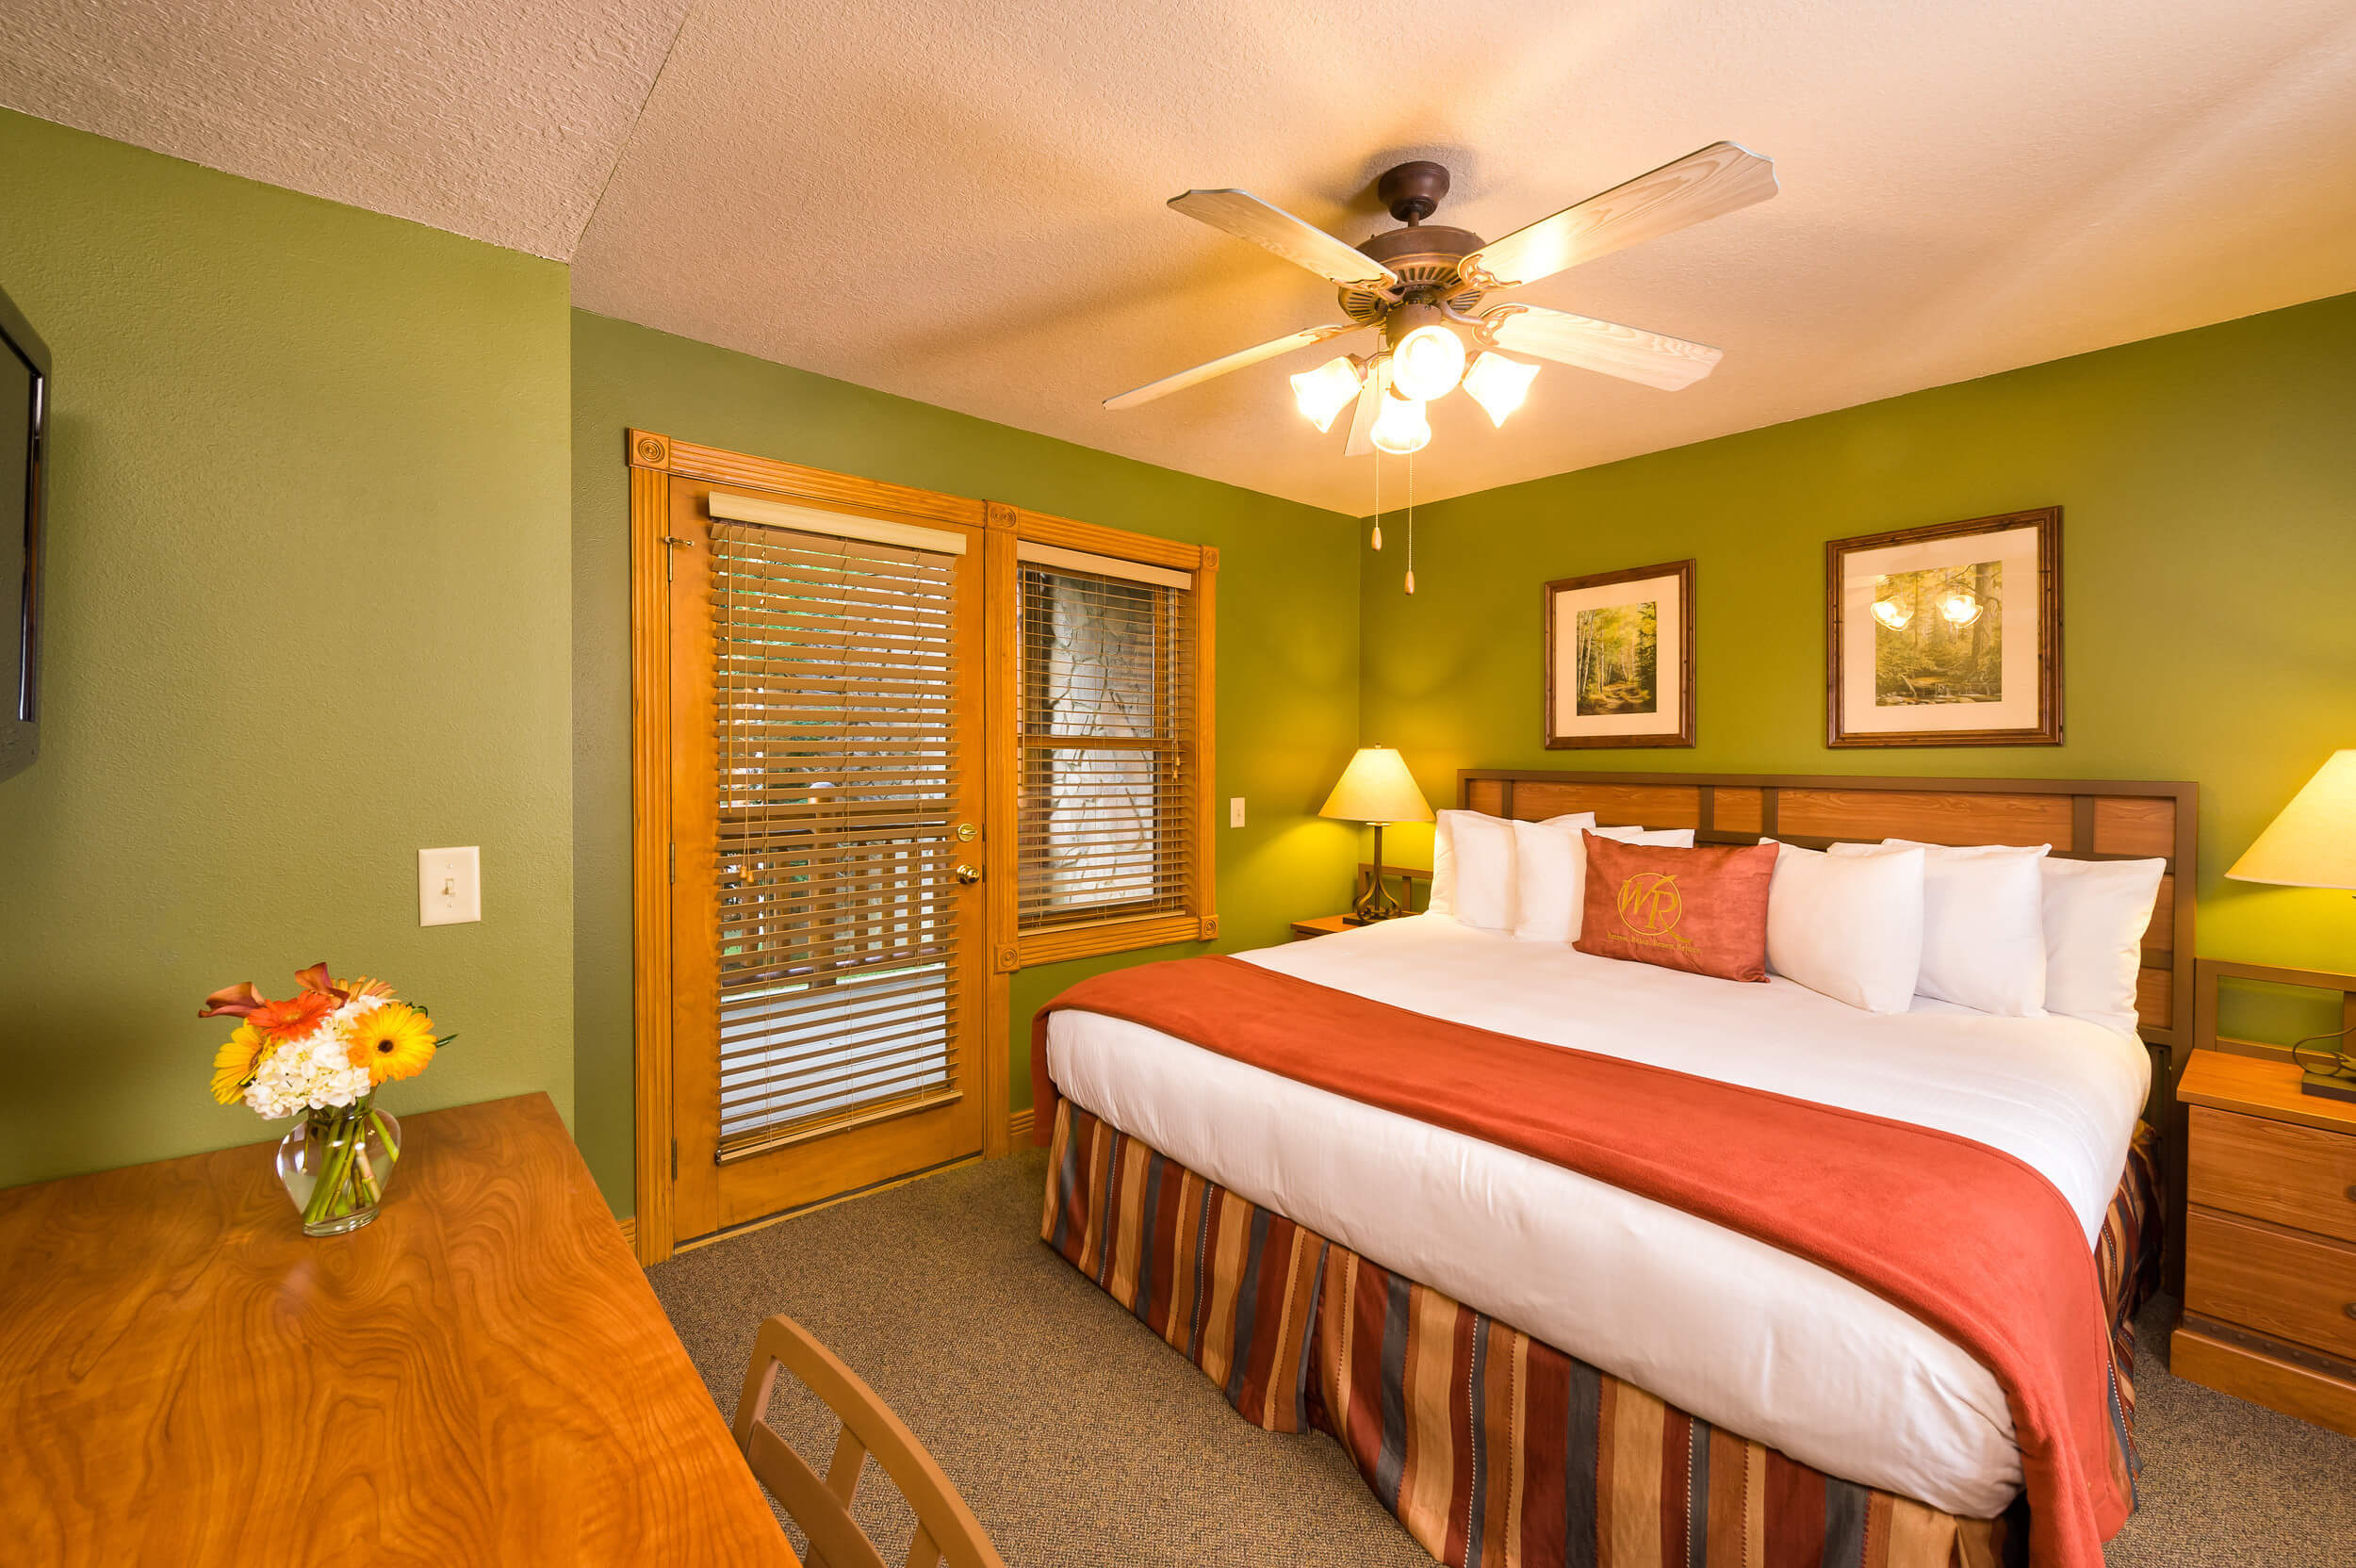 2 Bedroom Hotel Rooms In Gatlinburg Tn Hotels With 2 Bedroom Suites In Gatlinburg Tn Hotels